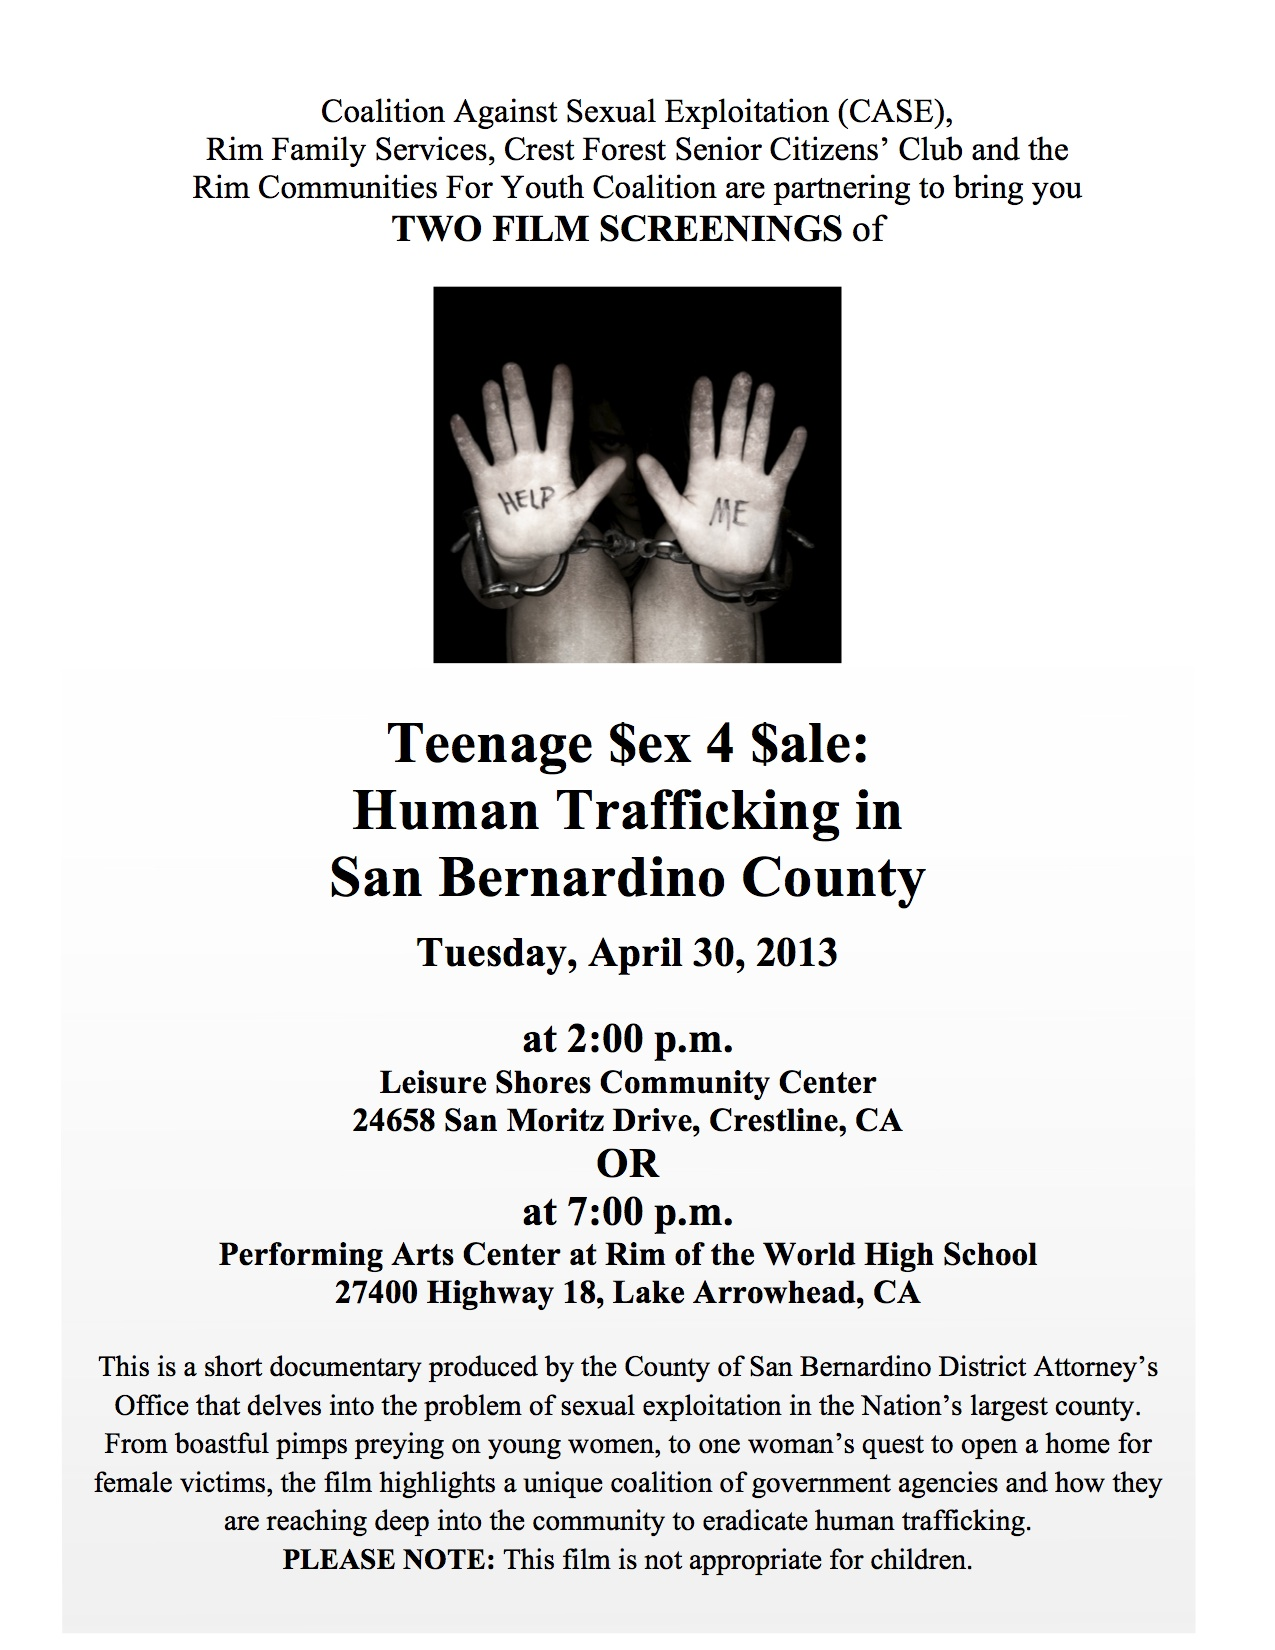 #2Human Trafficking Documentary Film Screening Flyer (2) - PIO revised 031413 copy